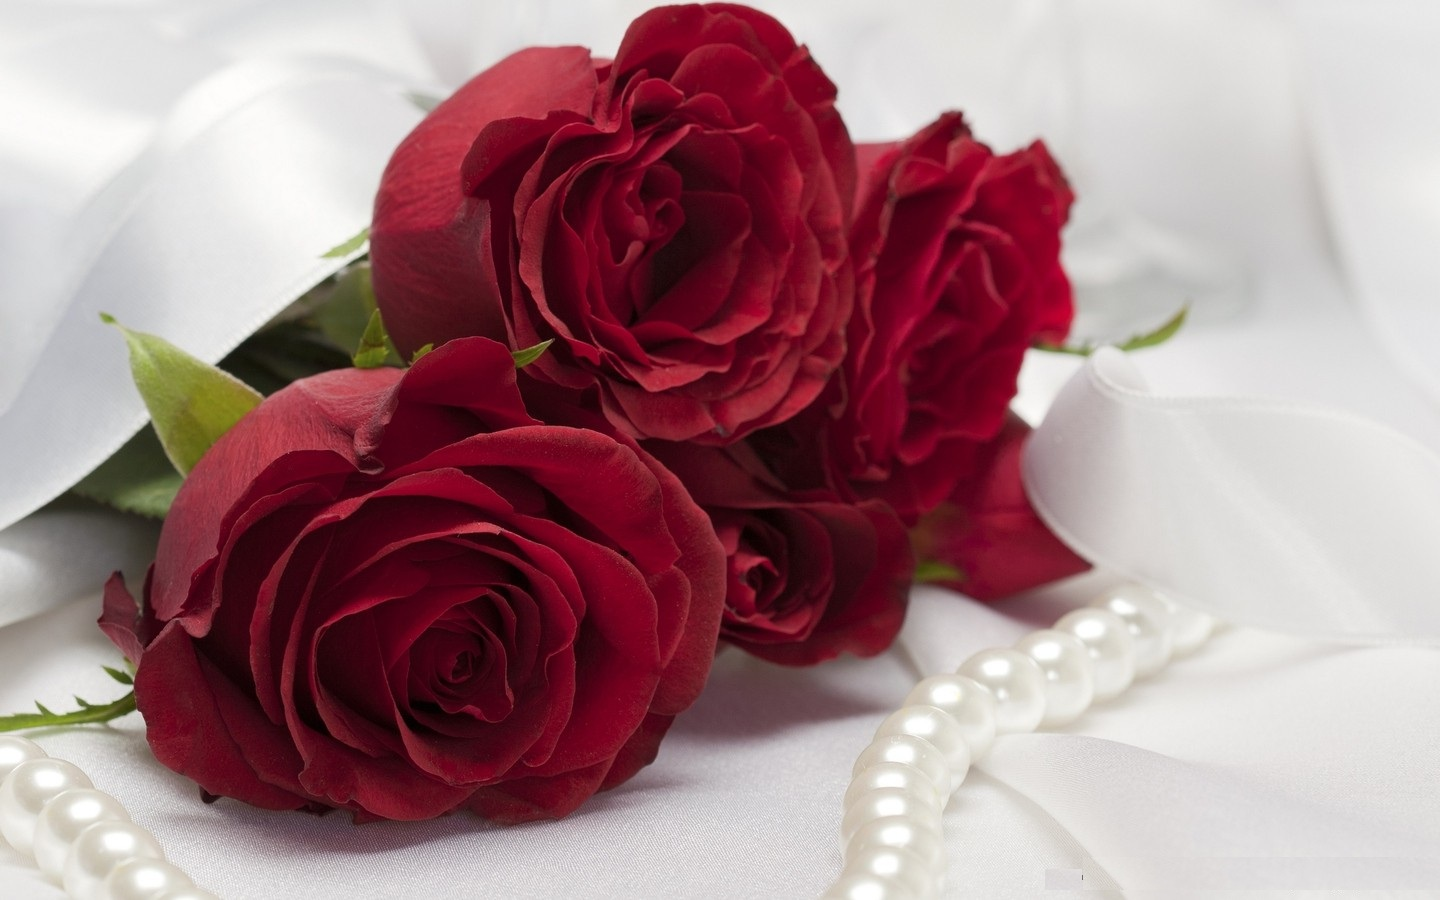 images of happy rose day